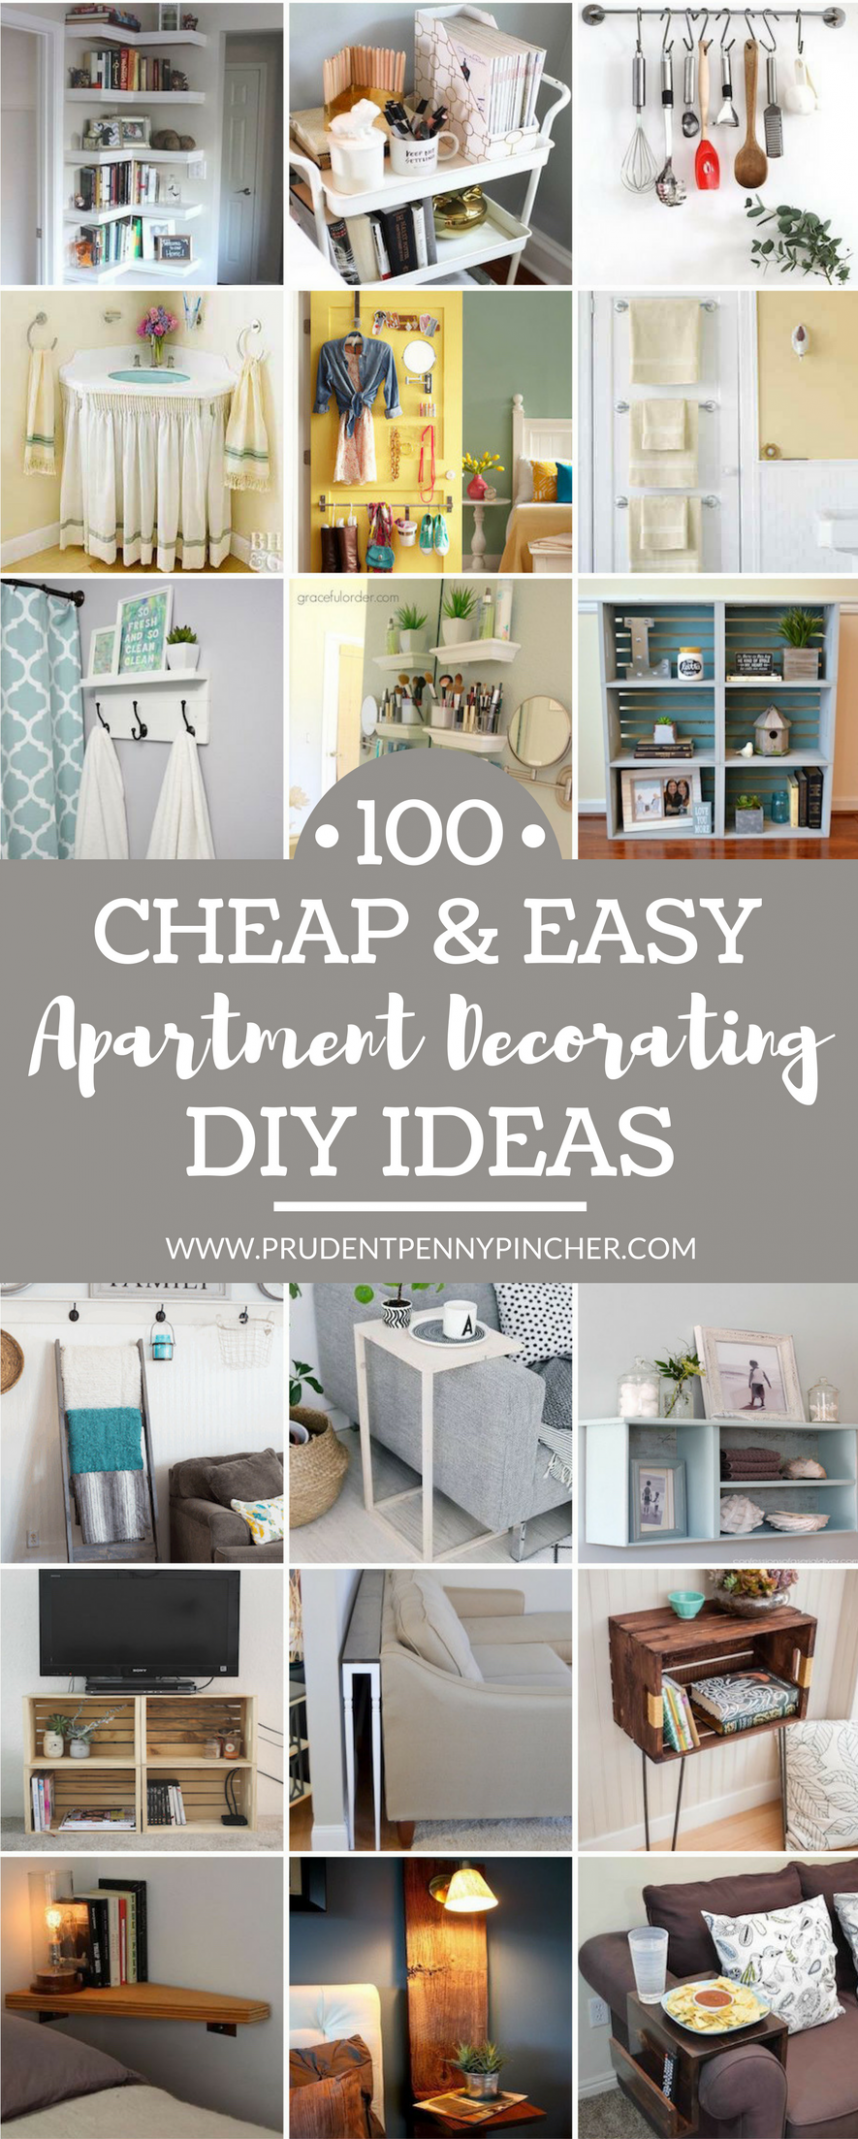 9 Cheap and Easy DIY Apartment Decorating Ideas | Diy apartment ..